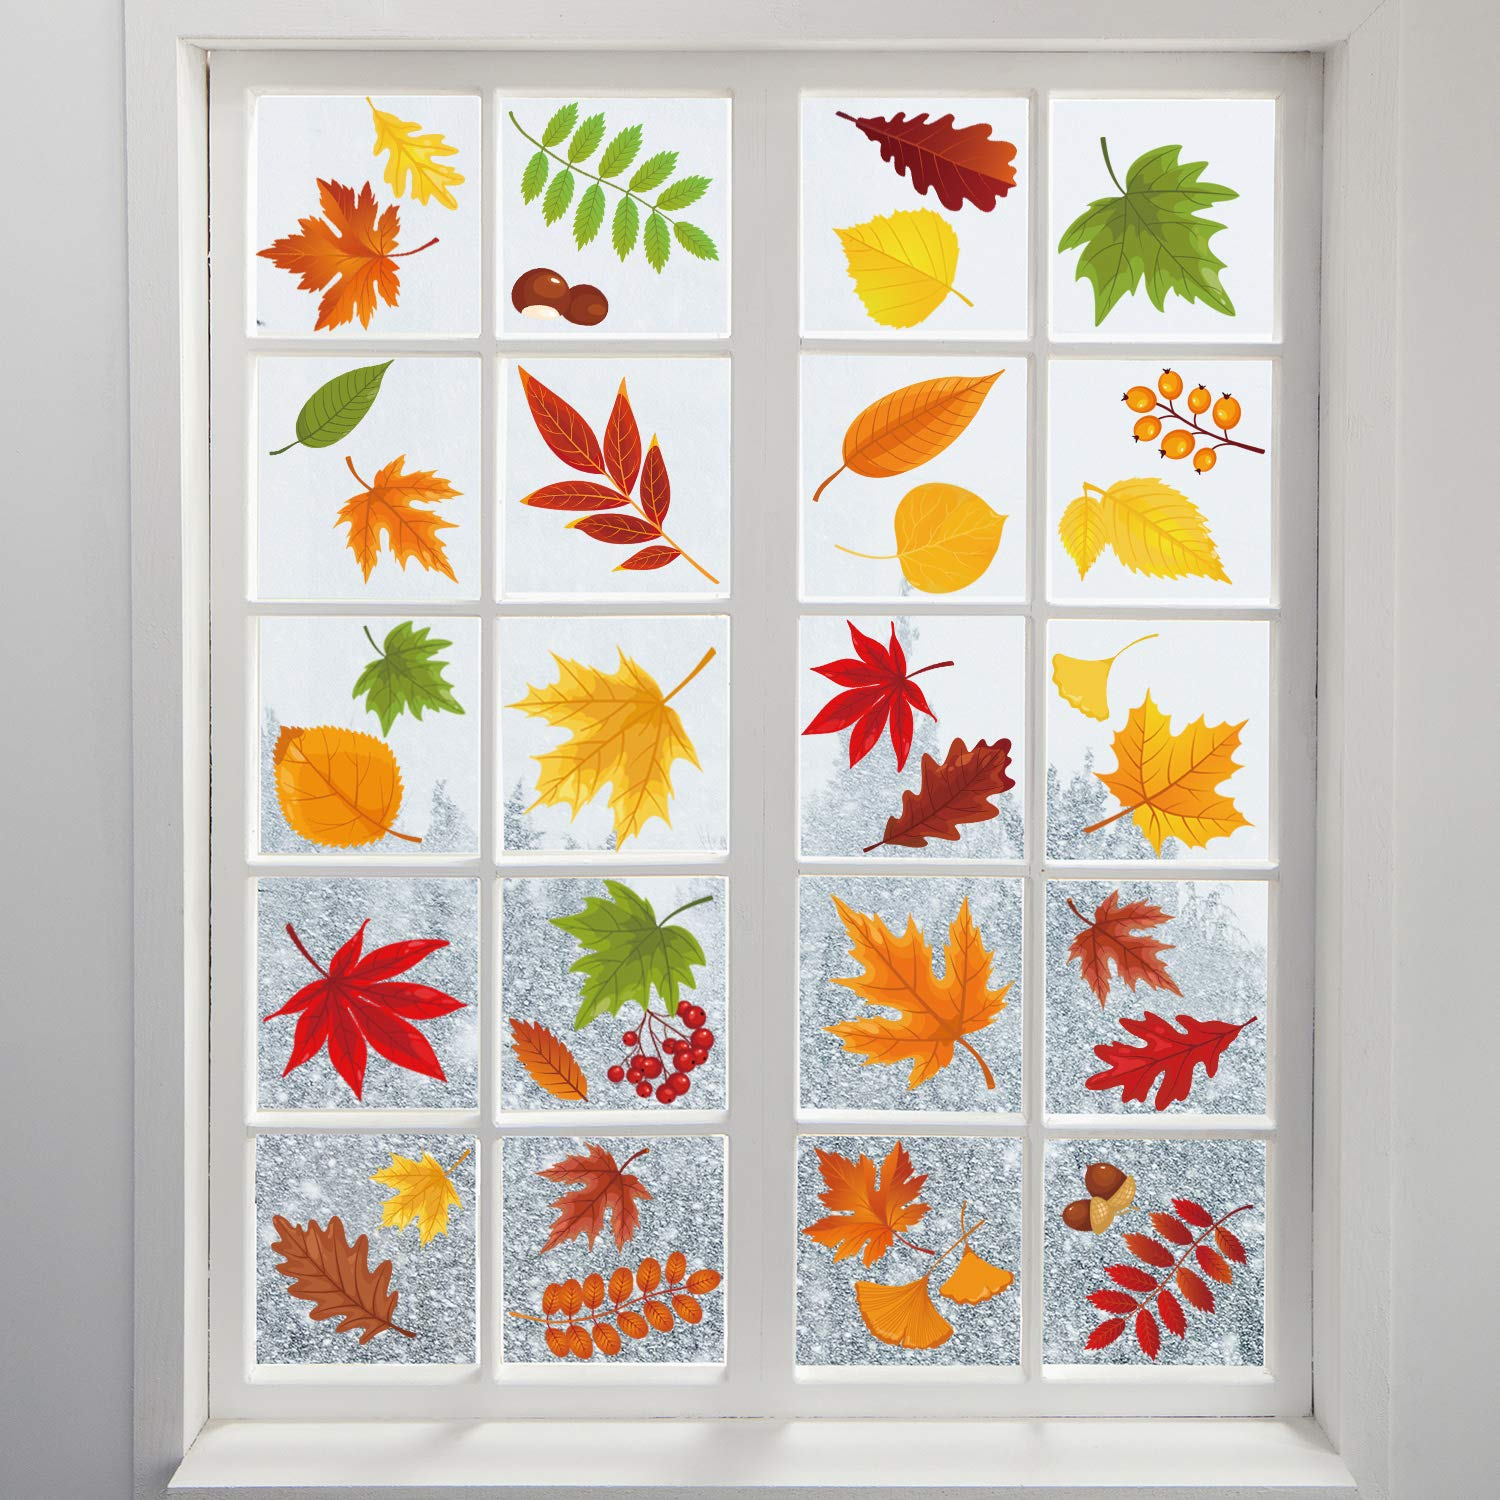 Adoreu 136PCS Fall Leaves Window Clings Autumn Thanksgiving Acorns Window Sticker Harvest Maple Decorations Autumn Decals Party Decor Ornaments (8 Sheets) by Adoreu